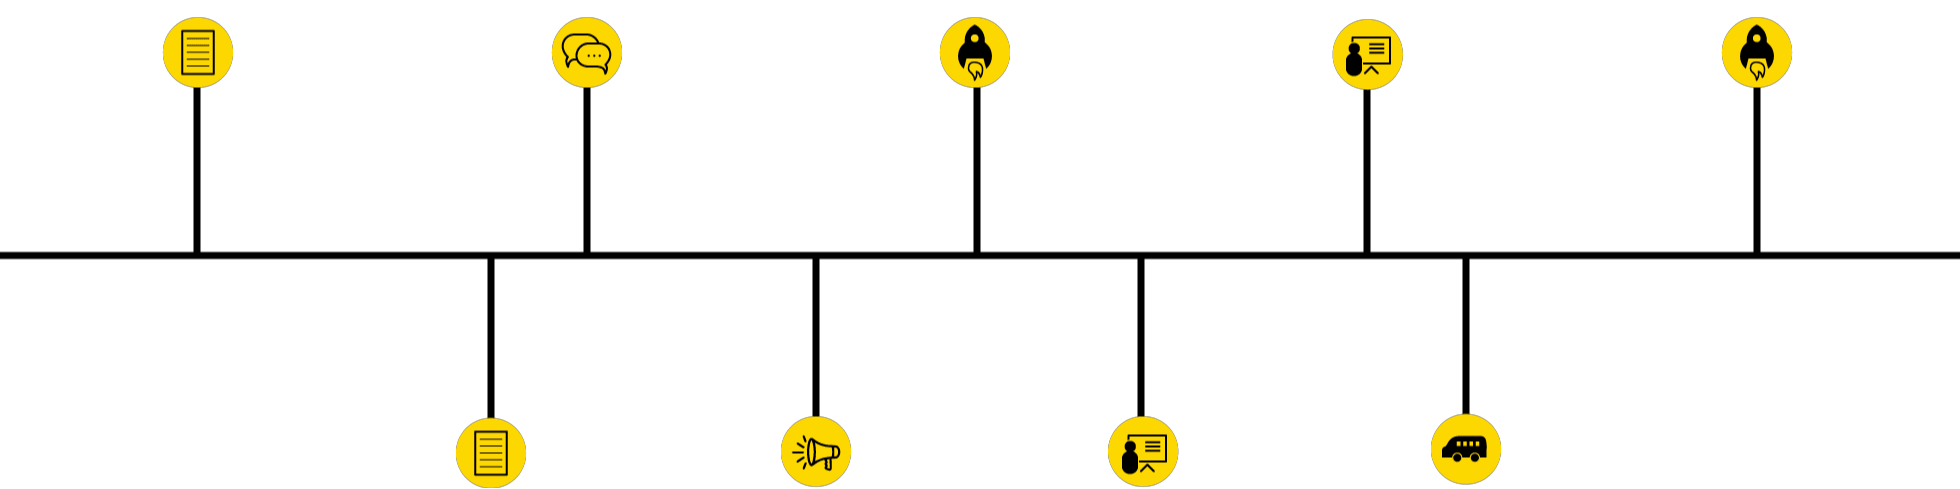 Transparent timeline. Lighthouse labs picture